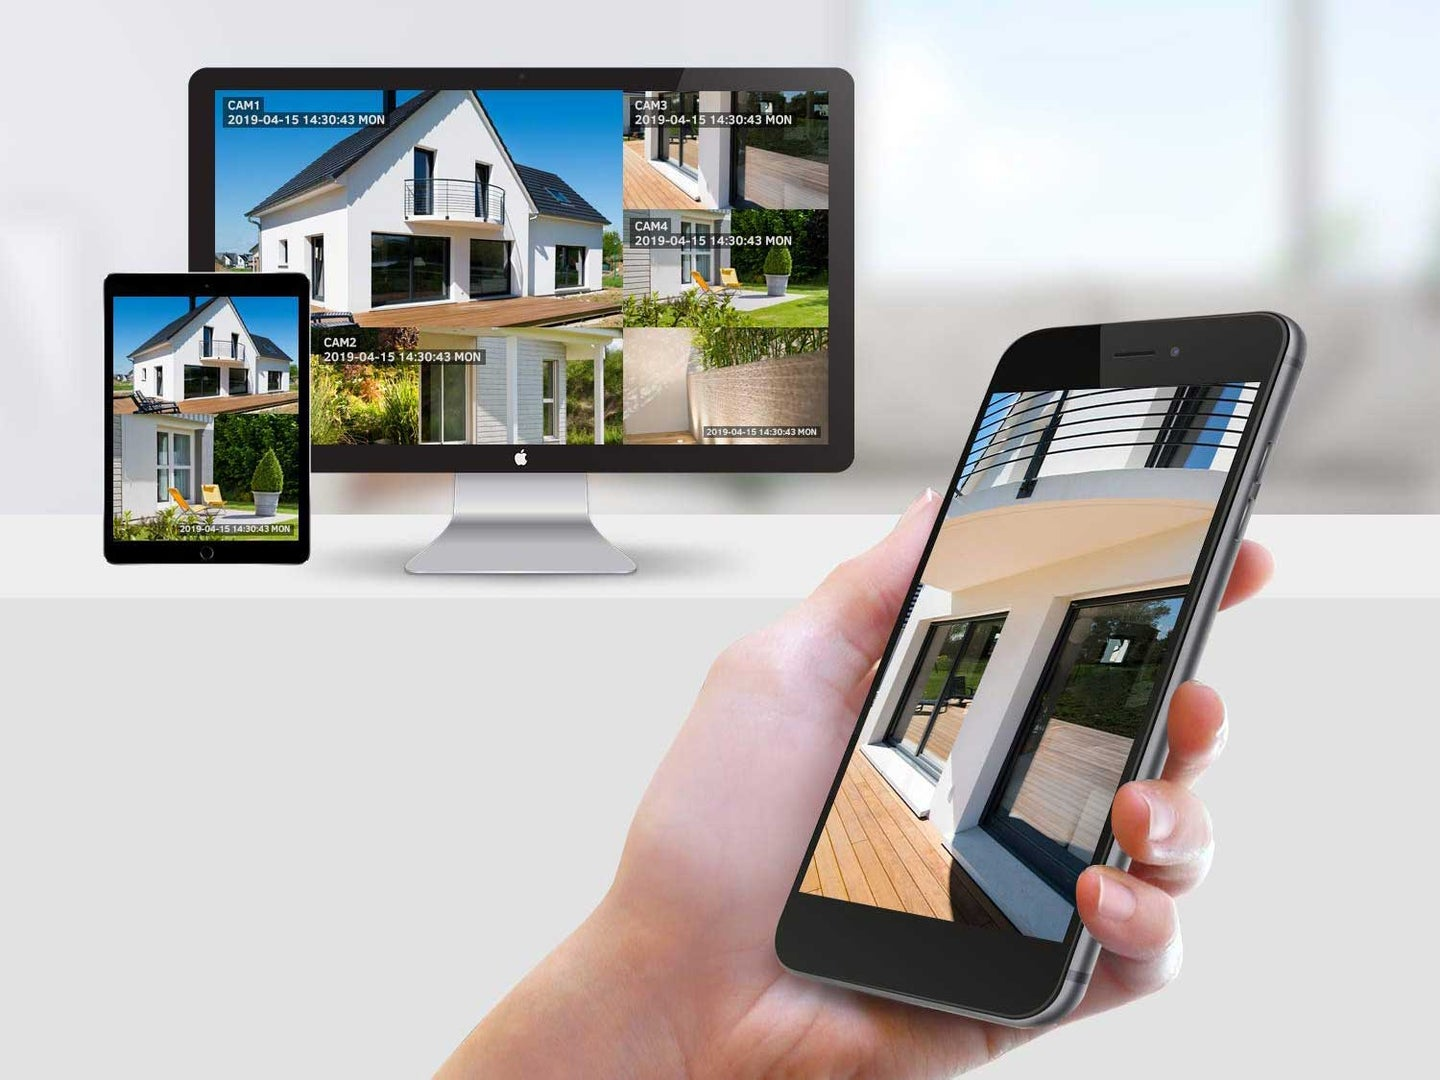 Home security system on phone app